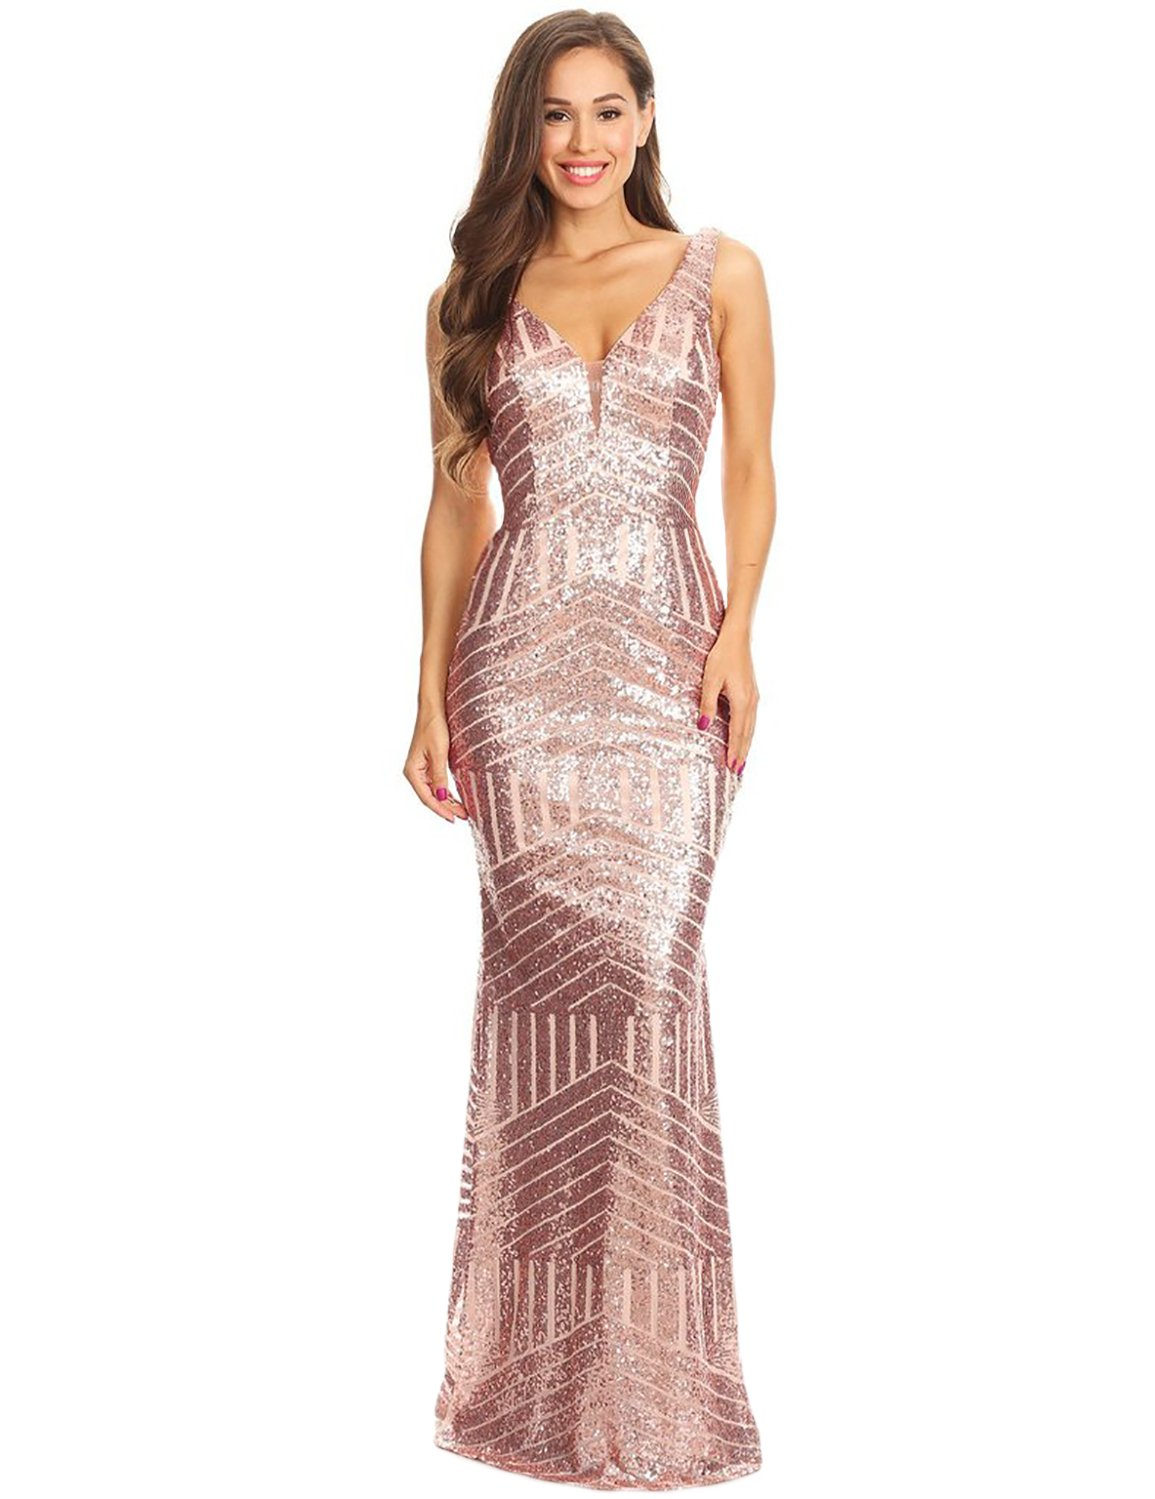 e4673185a42 Oufeisha Women s Long Mermaid Sequined Prom Dresses 2019 V Neck Evening  Formal Gowns Rose Gold US6